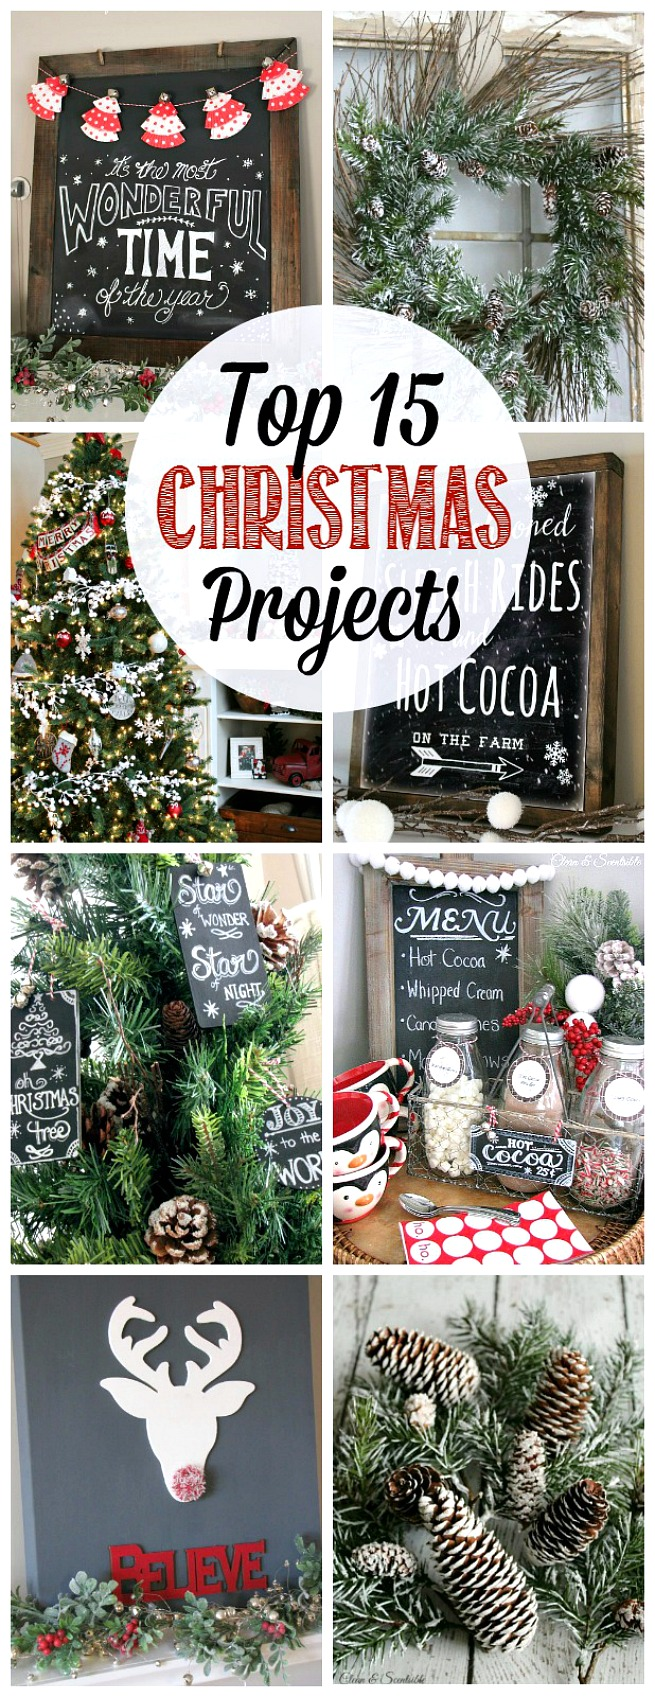 Awesome collection of Christmas crafts and other Christmas projects. Must do these!